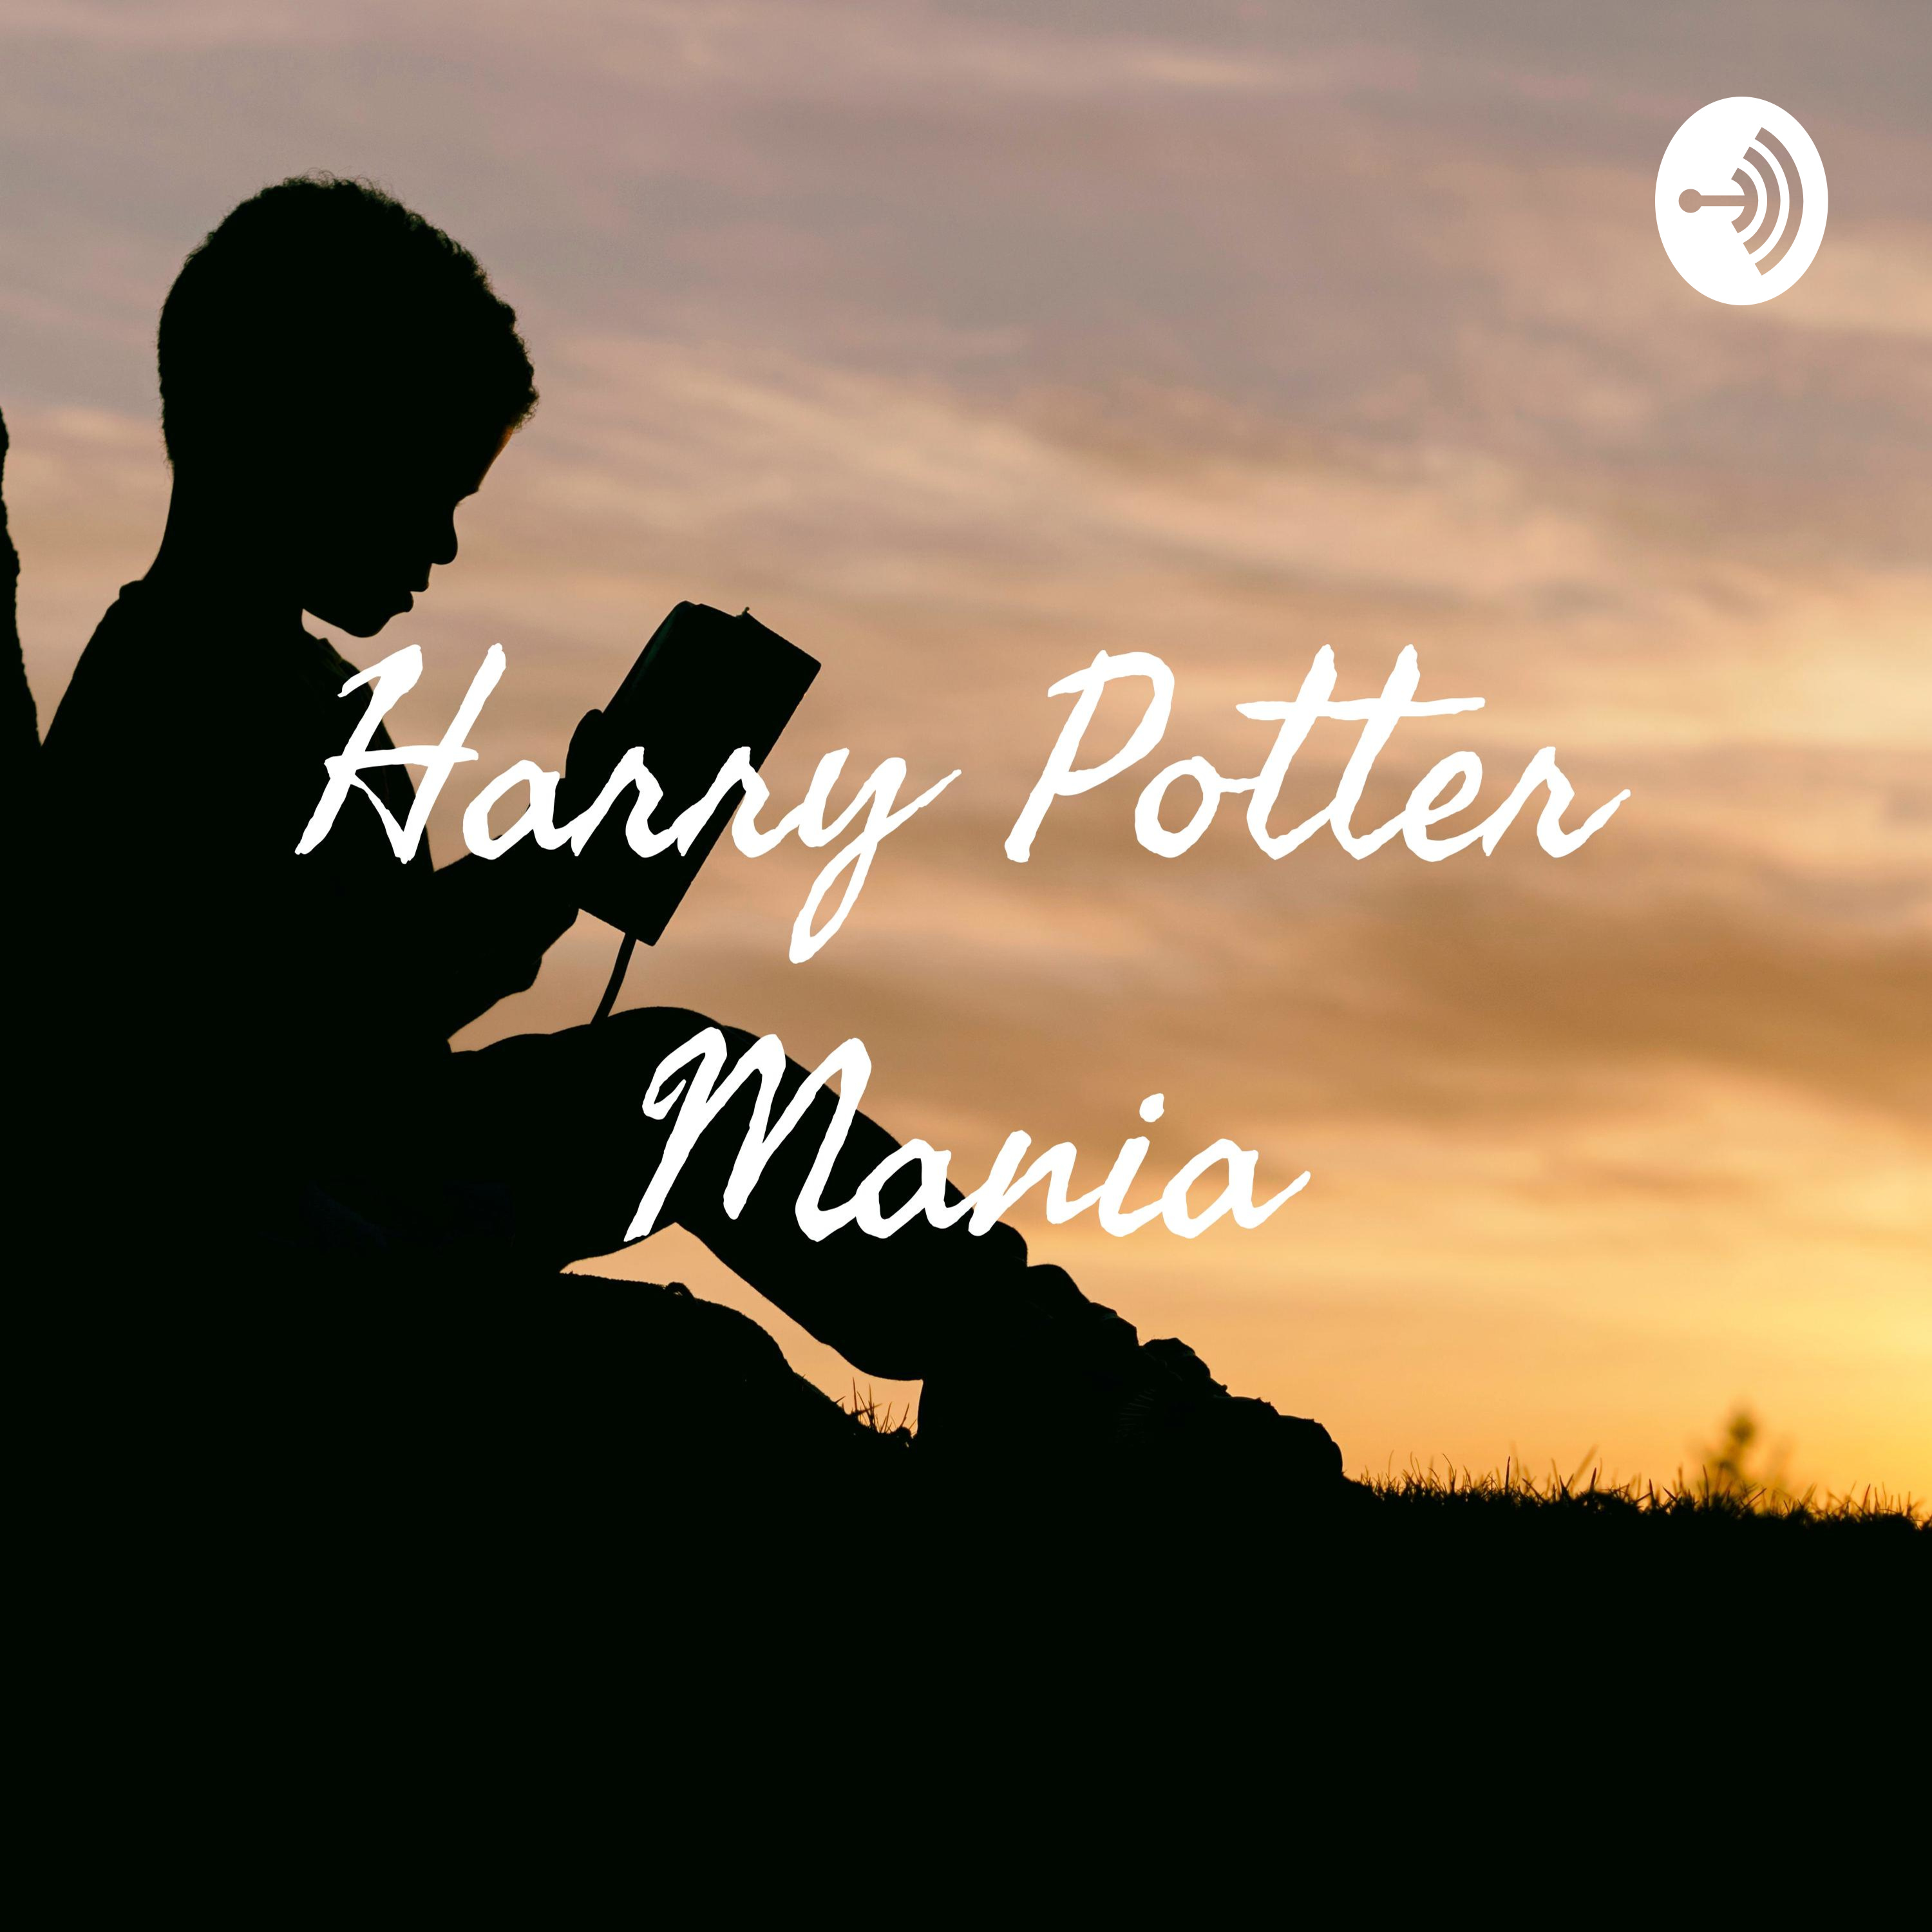 Episode Two: Harry potter and the Chamber of Secrets